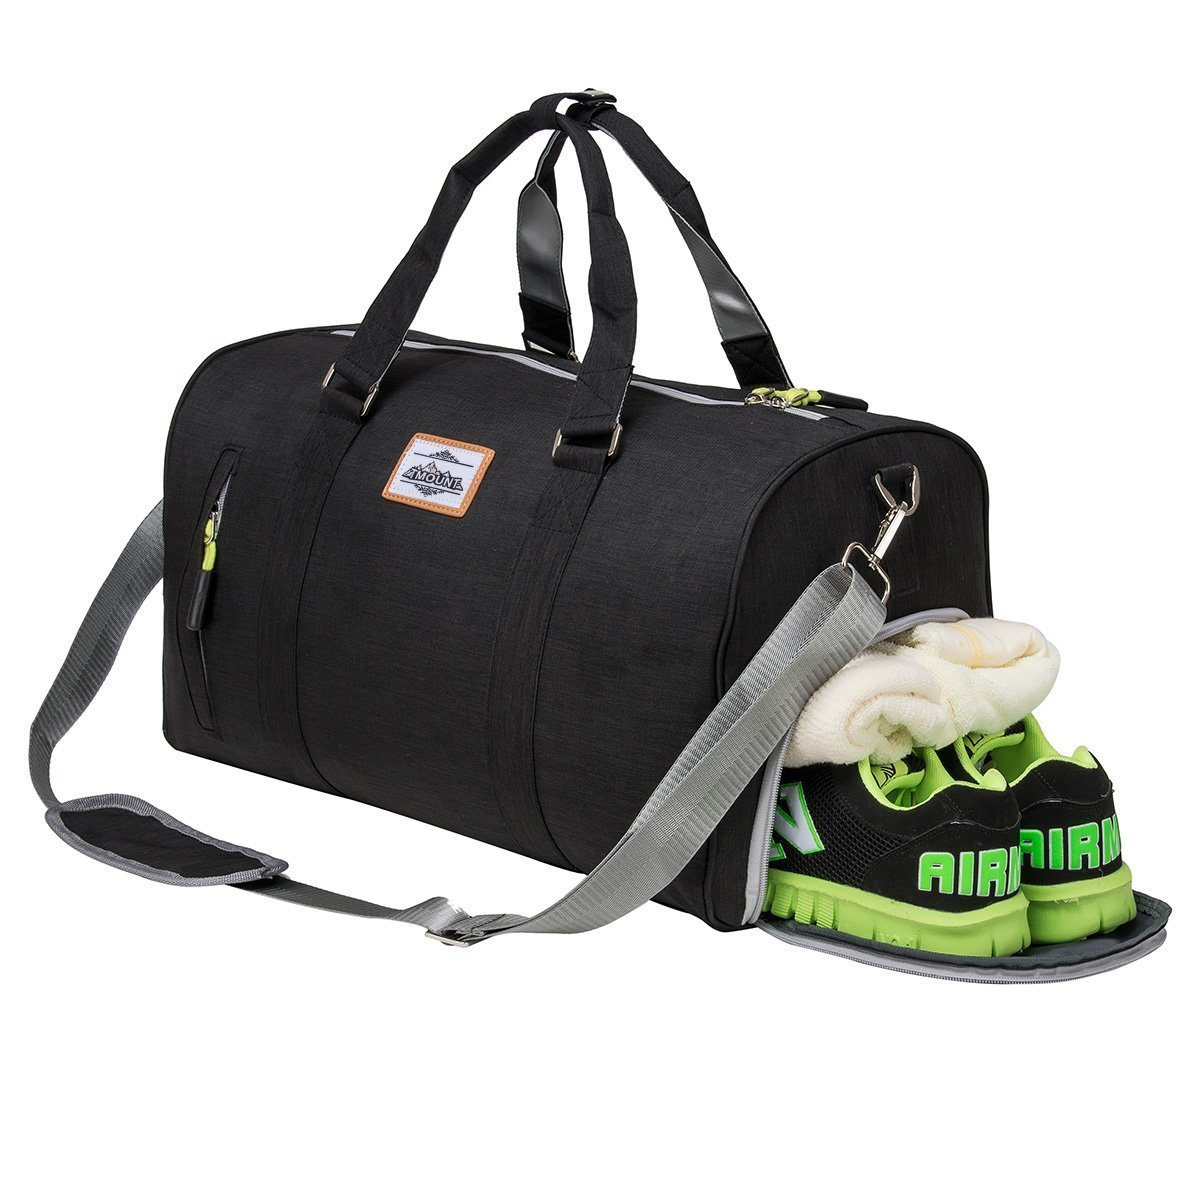 Amazon.com  Sport Gym Bag with Shoe Compartment Duffle Travel Bag for Men    Women  Sports   Outdoors 78565b7981